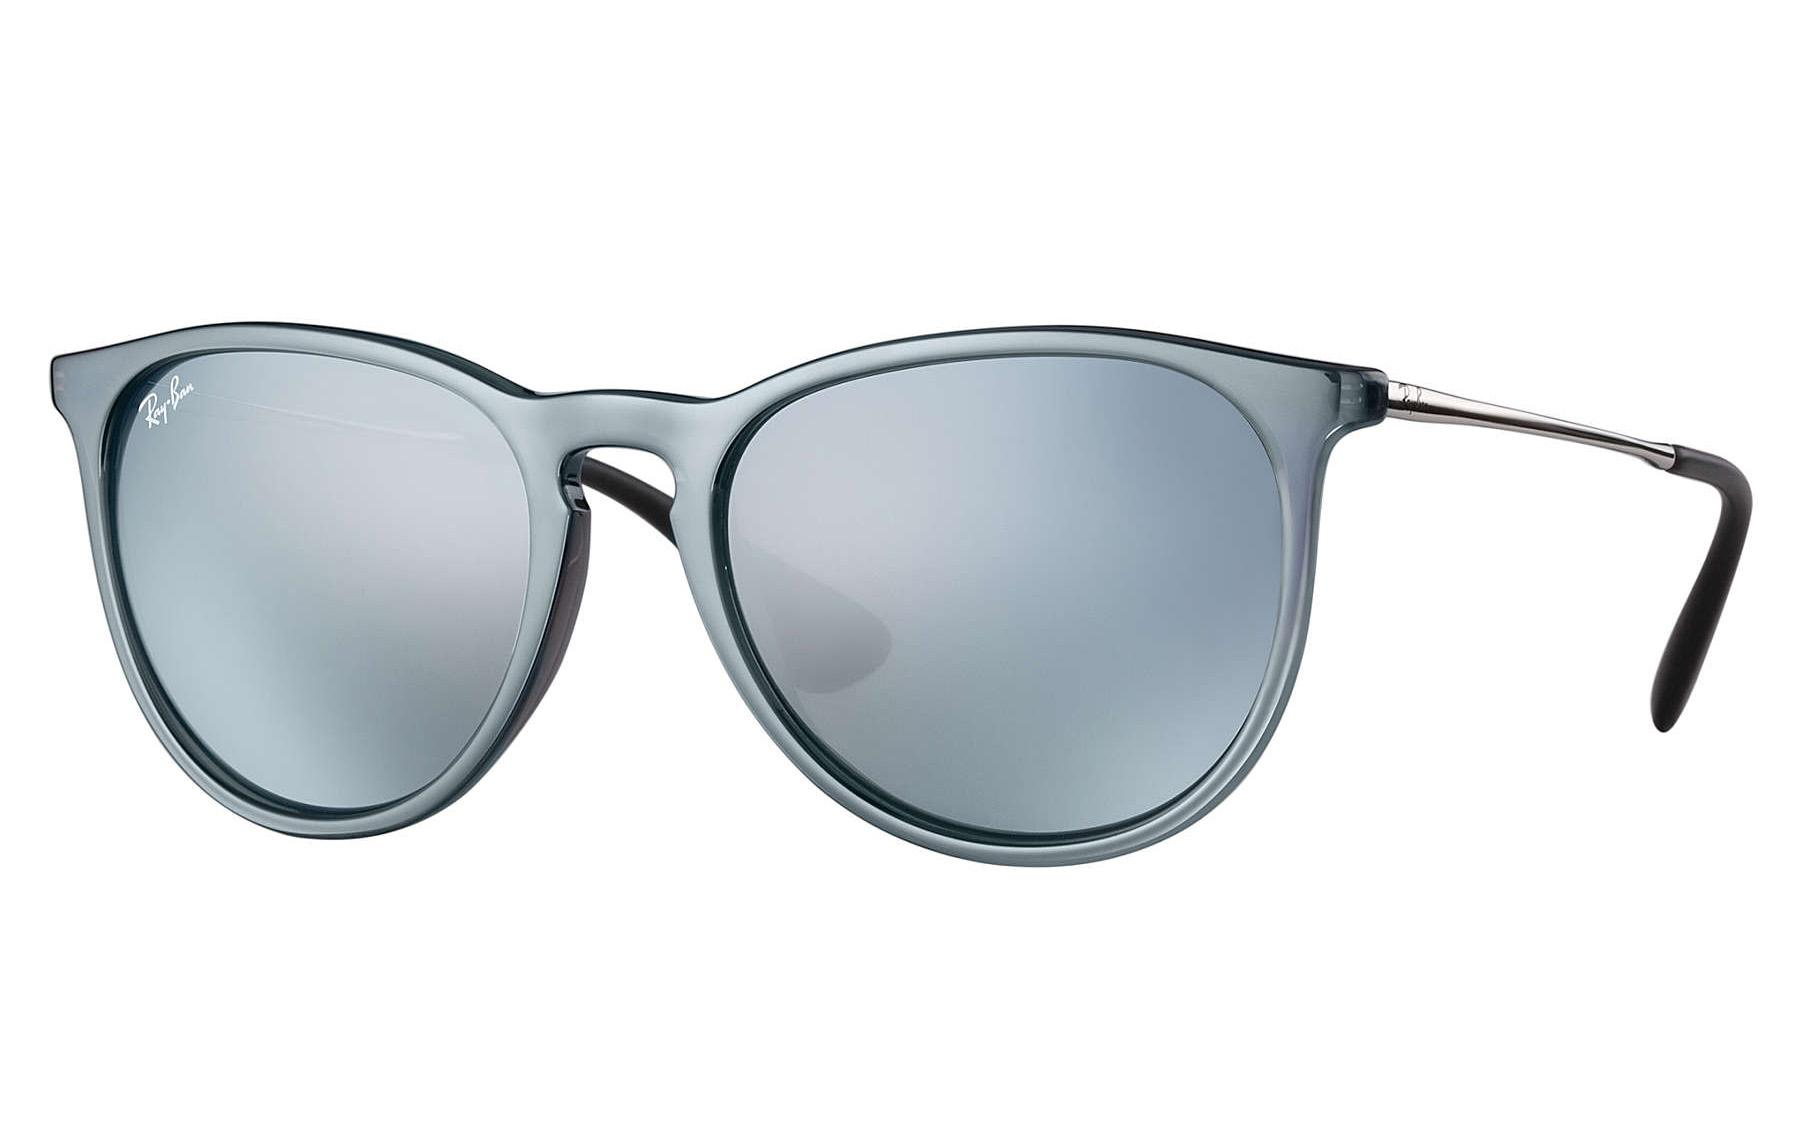 Ray-Ban Erika Sunglasses for $78.50 Shipped